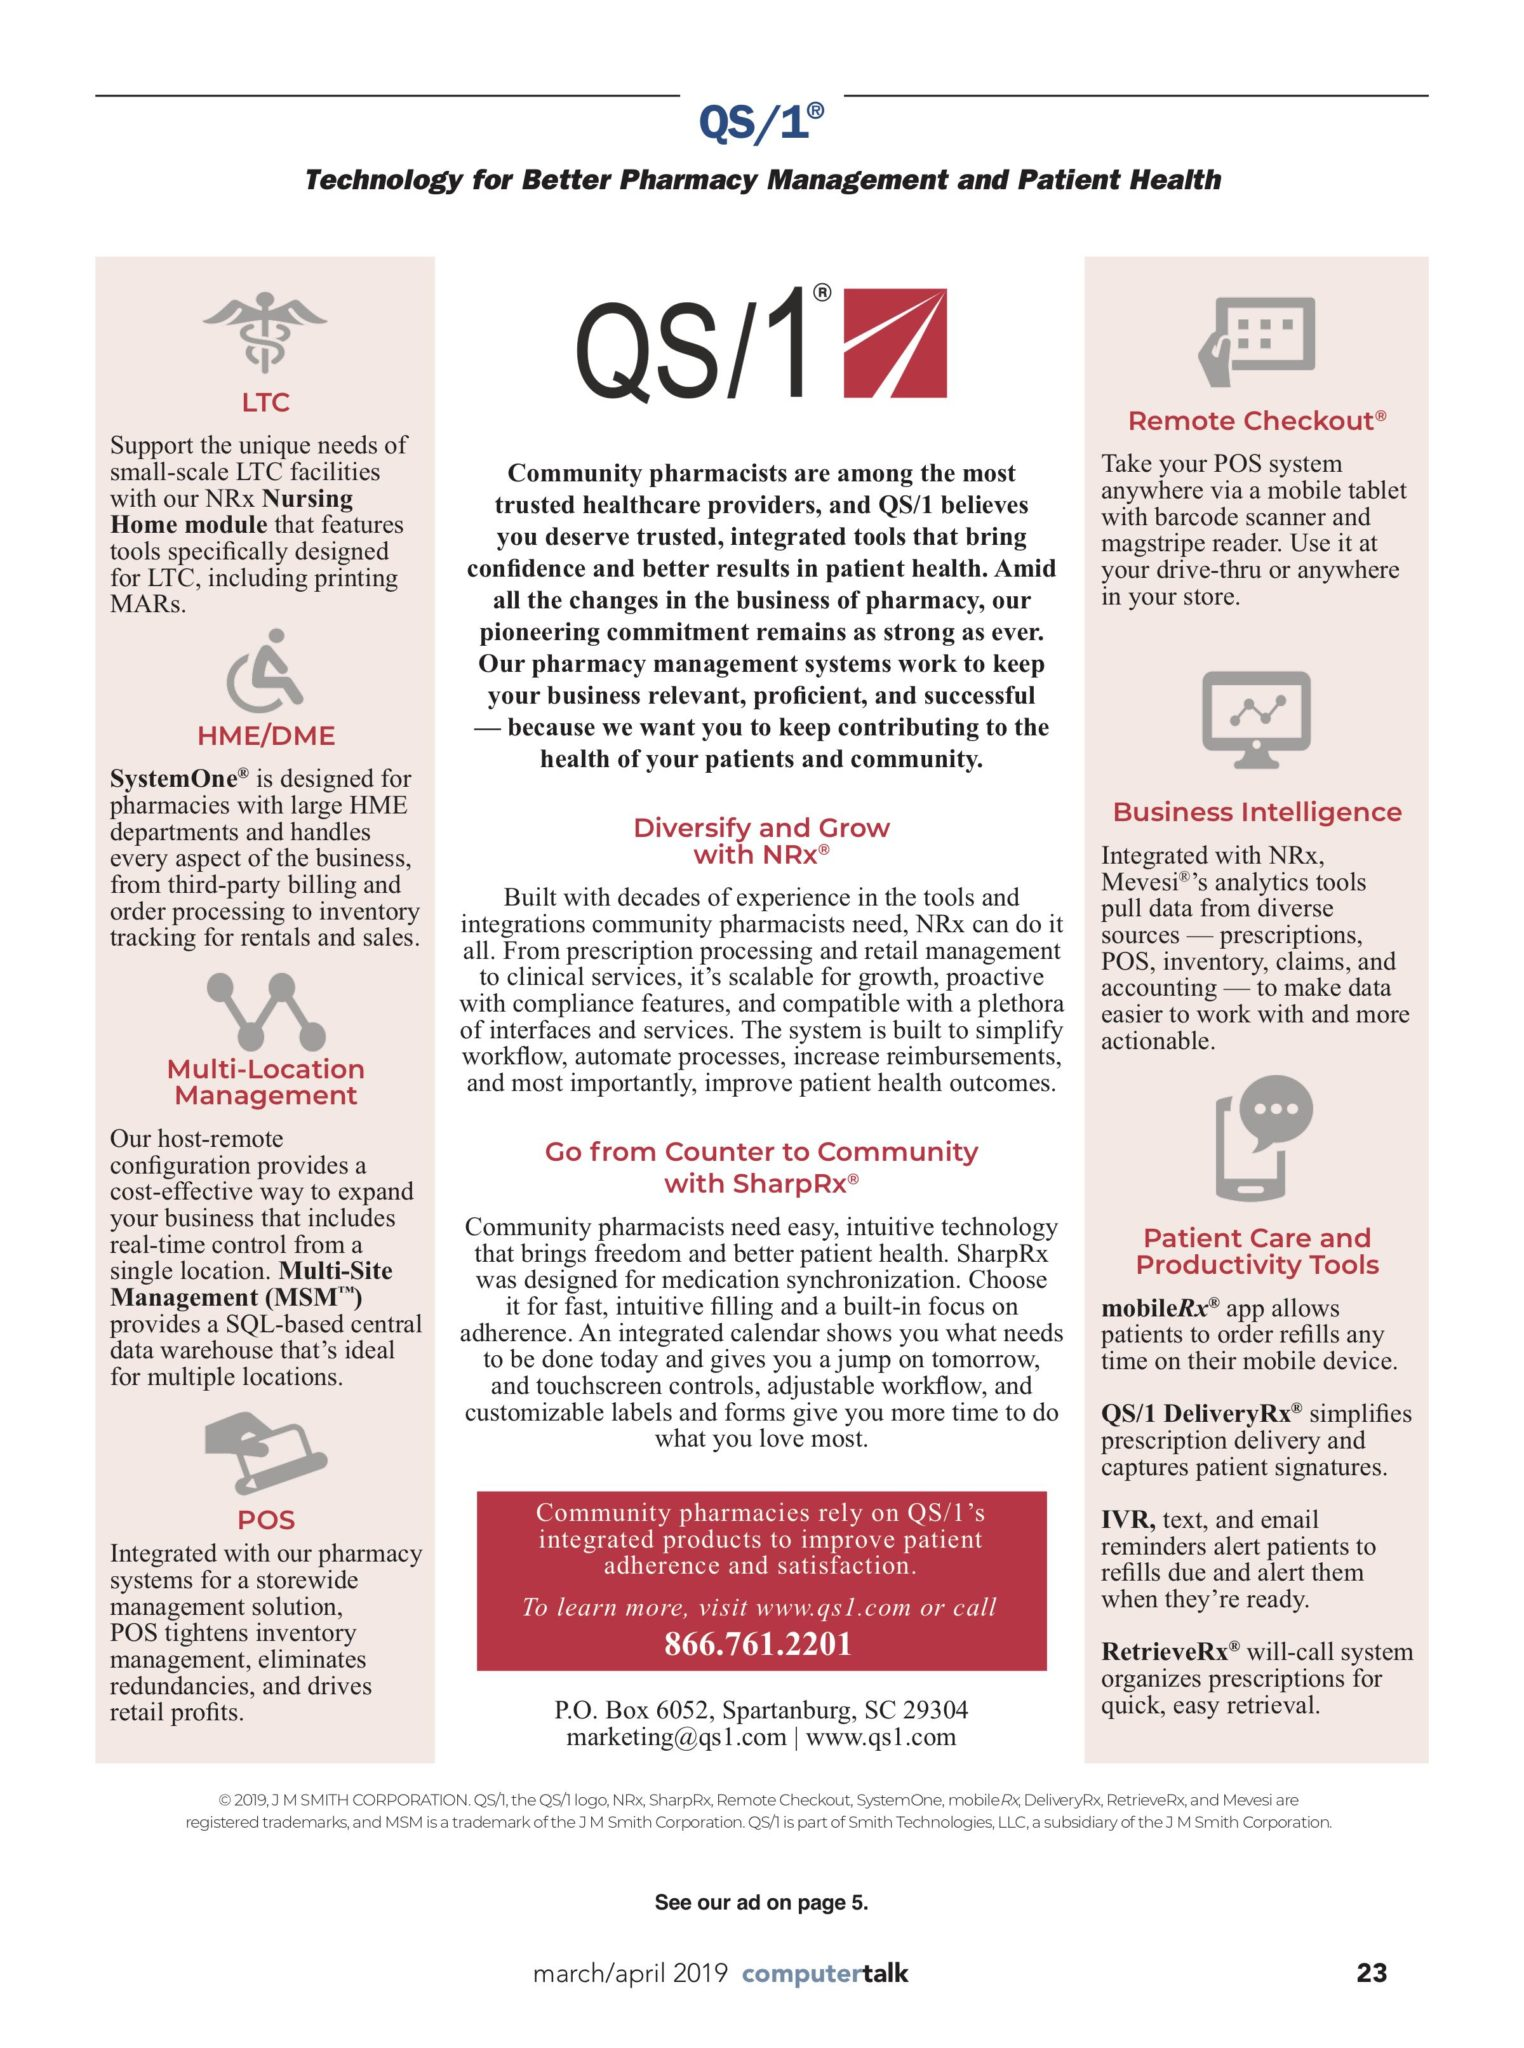 QS/1 Pharmacy Management Systems | ComputerTalk for the